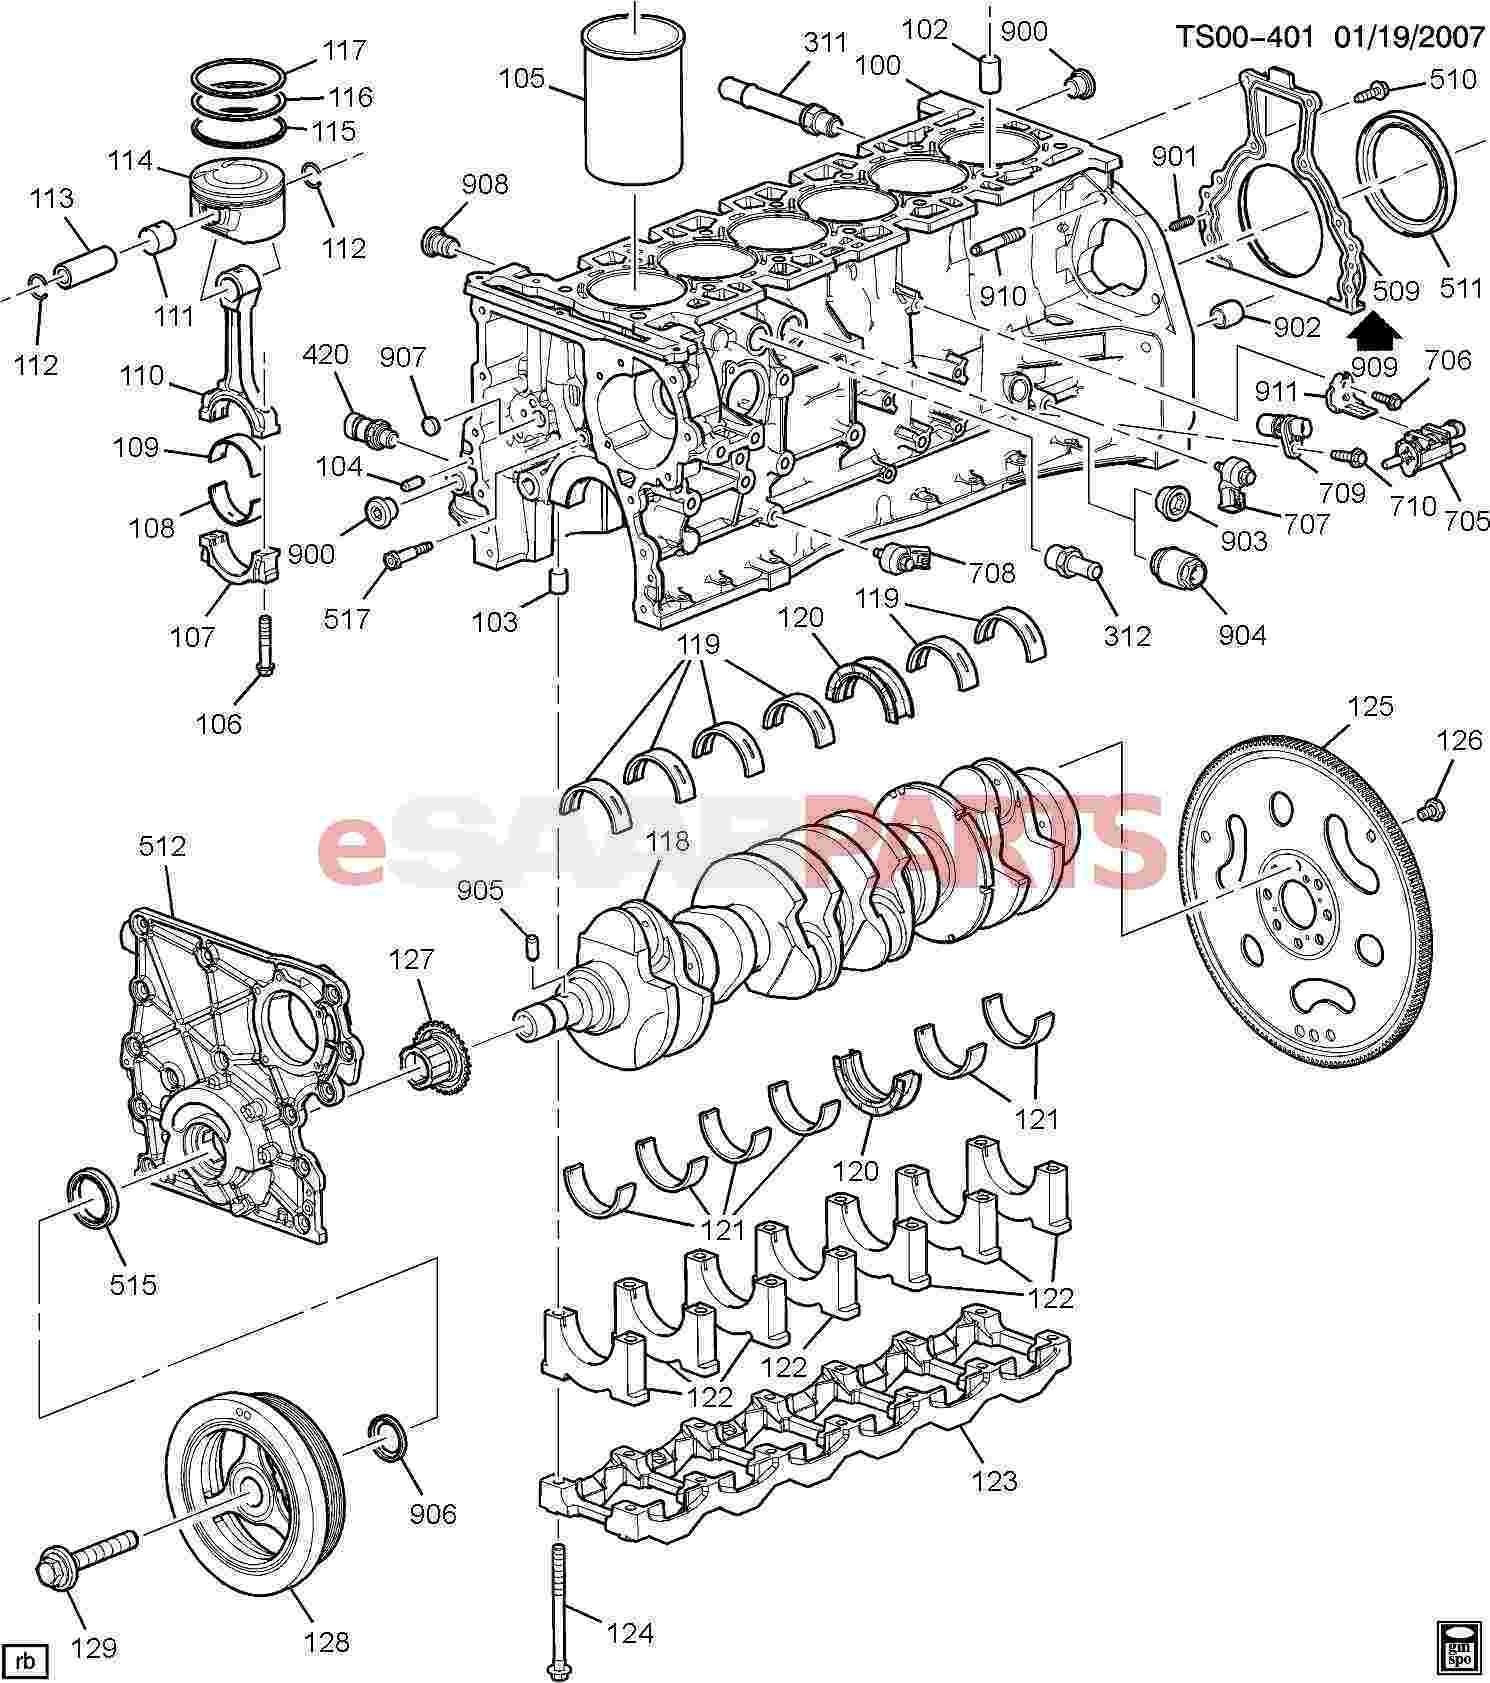 2005 Chevy Cavalier Engine Diagram 2005 Chevy Malibu Engine Diagram ] Saab Plug M16x1 5—14 24 Od Of 2005 Chevy Cavalier Engine Diagram